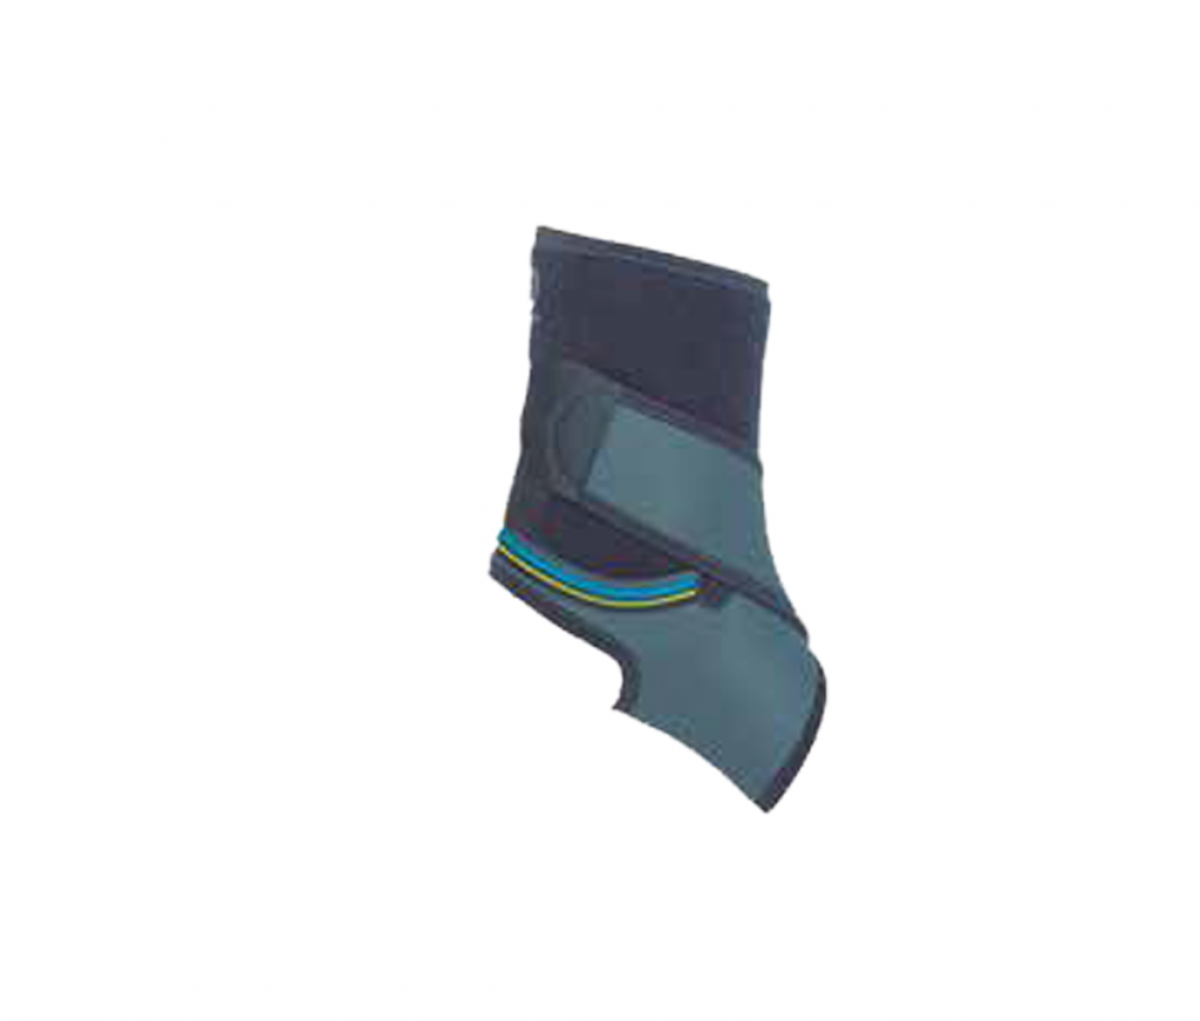 ANKLE SUPPORT - Free Size NPOS111